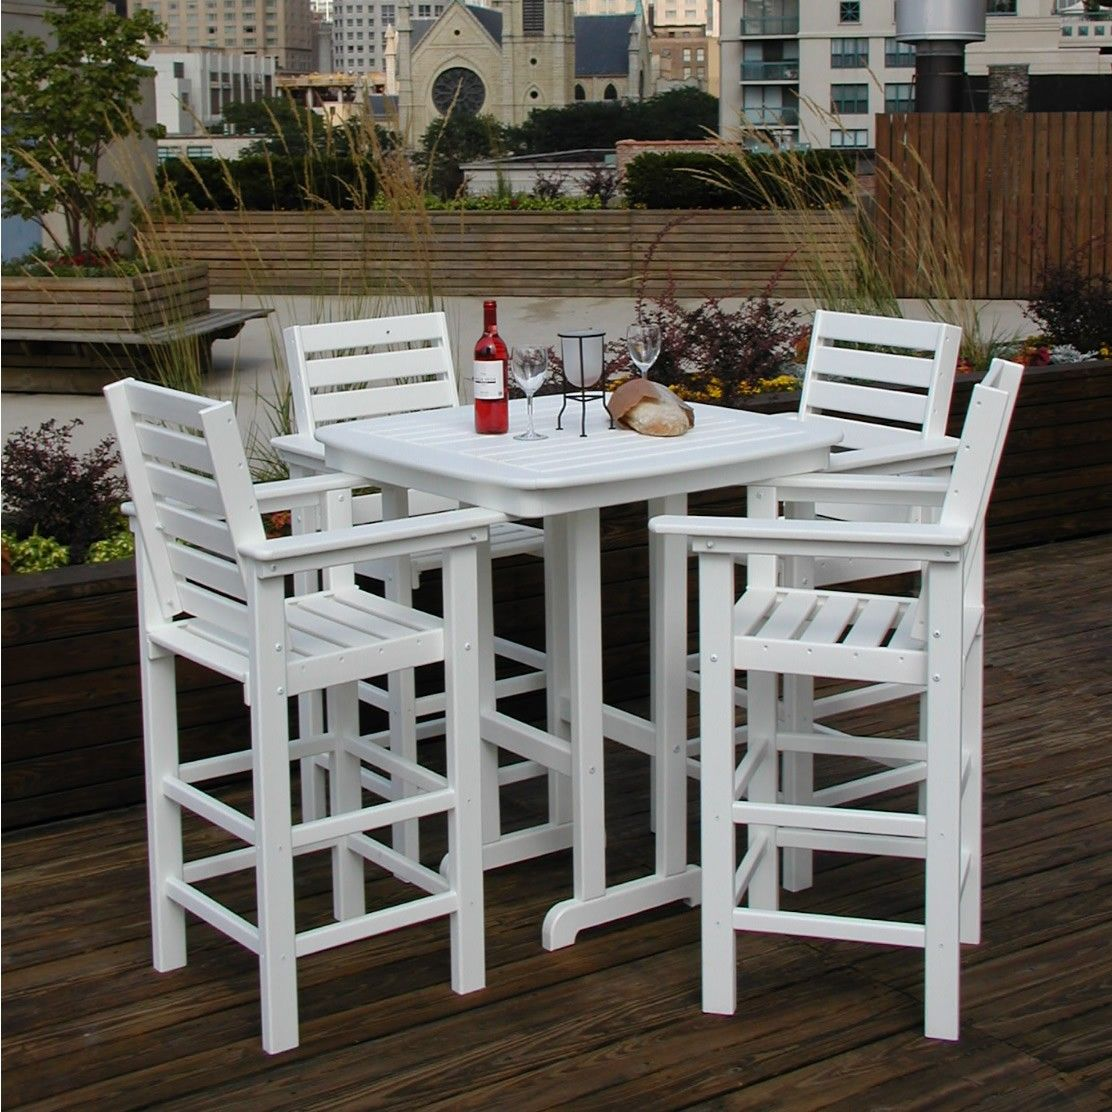 Find This Pin And More On Patio Furniture Sets.  High Top Patio Set